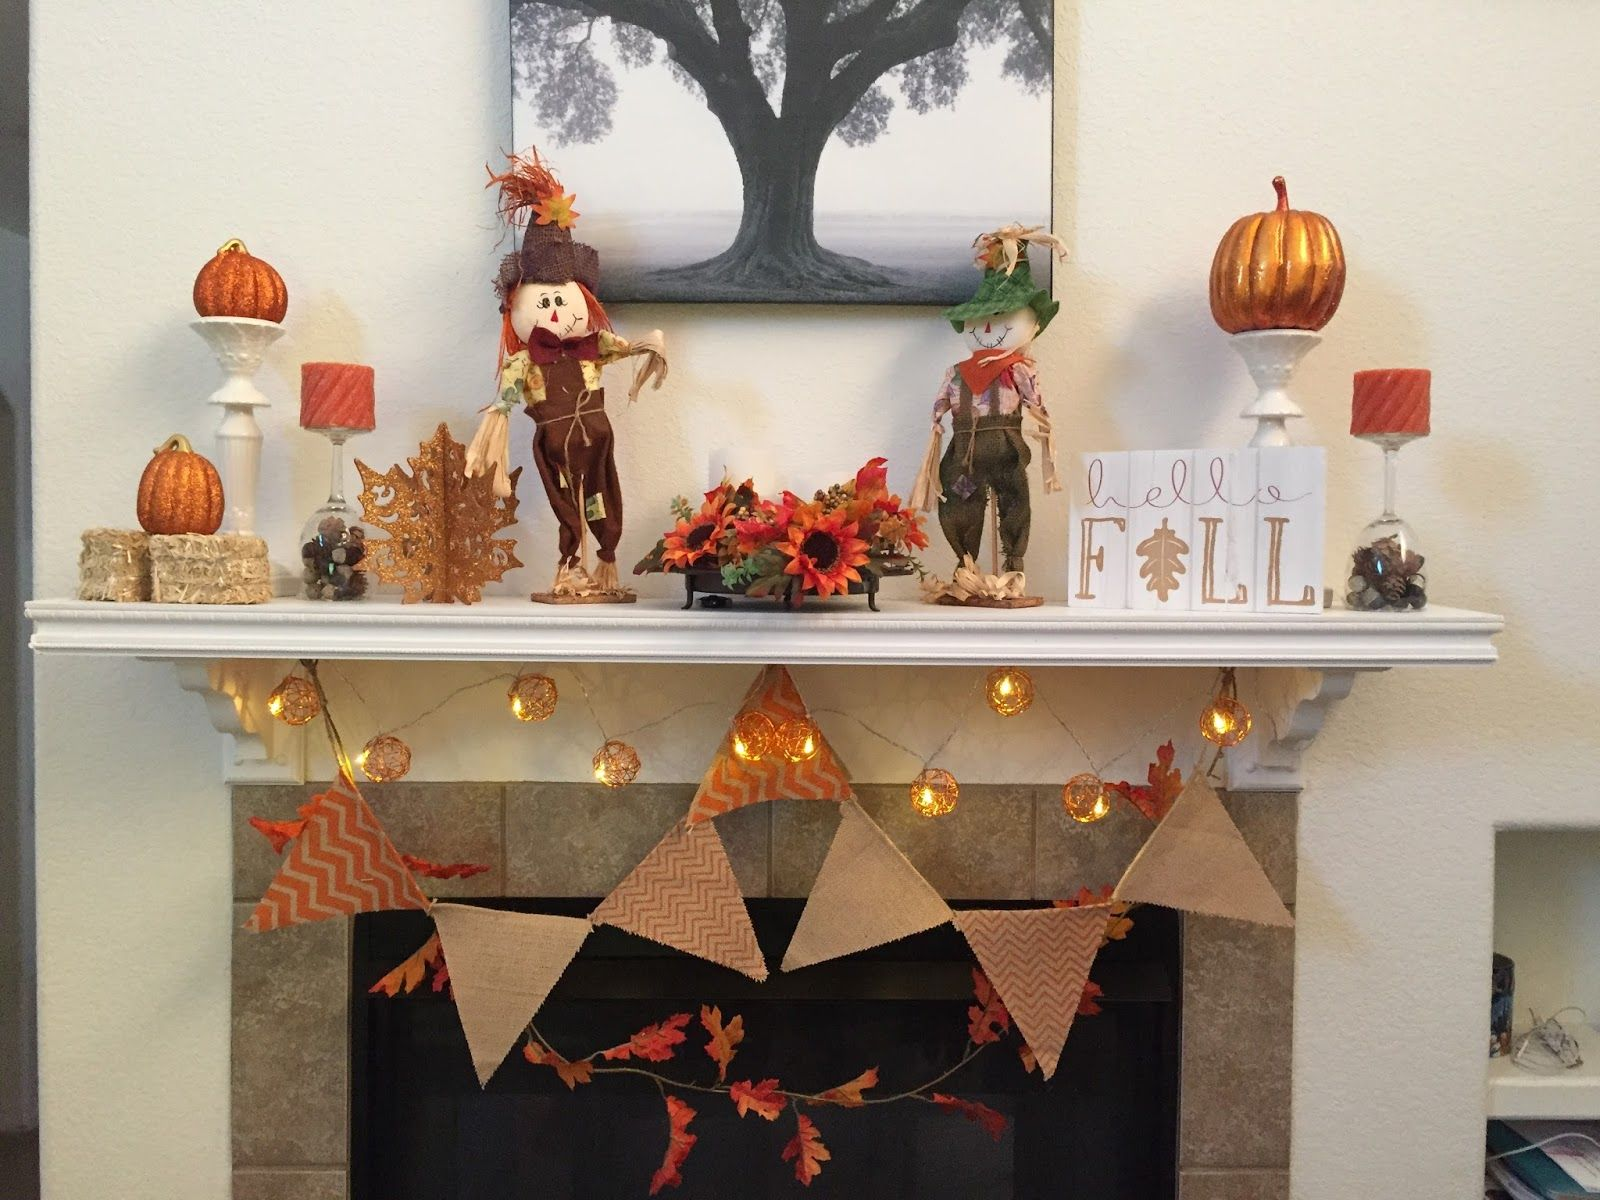 Dollar Tree Home Decor Ideas Part - 41: Image Result For Dollar Store Fall Mantel Decorating Ideas